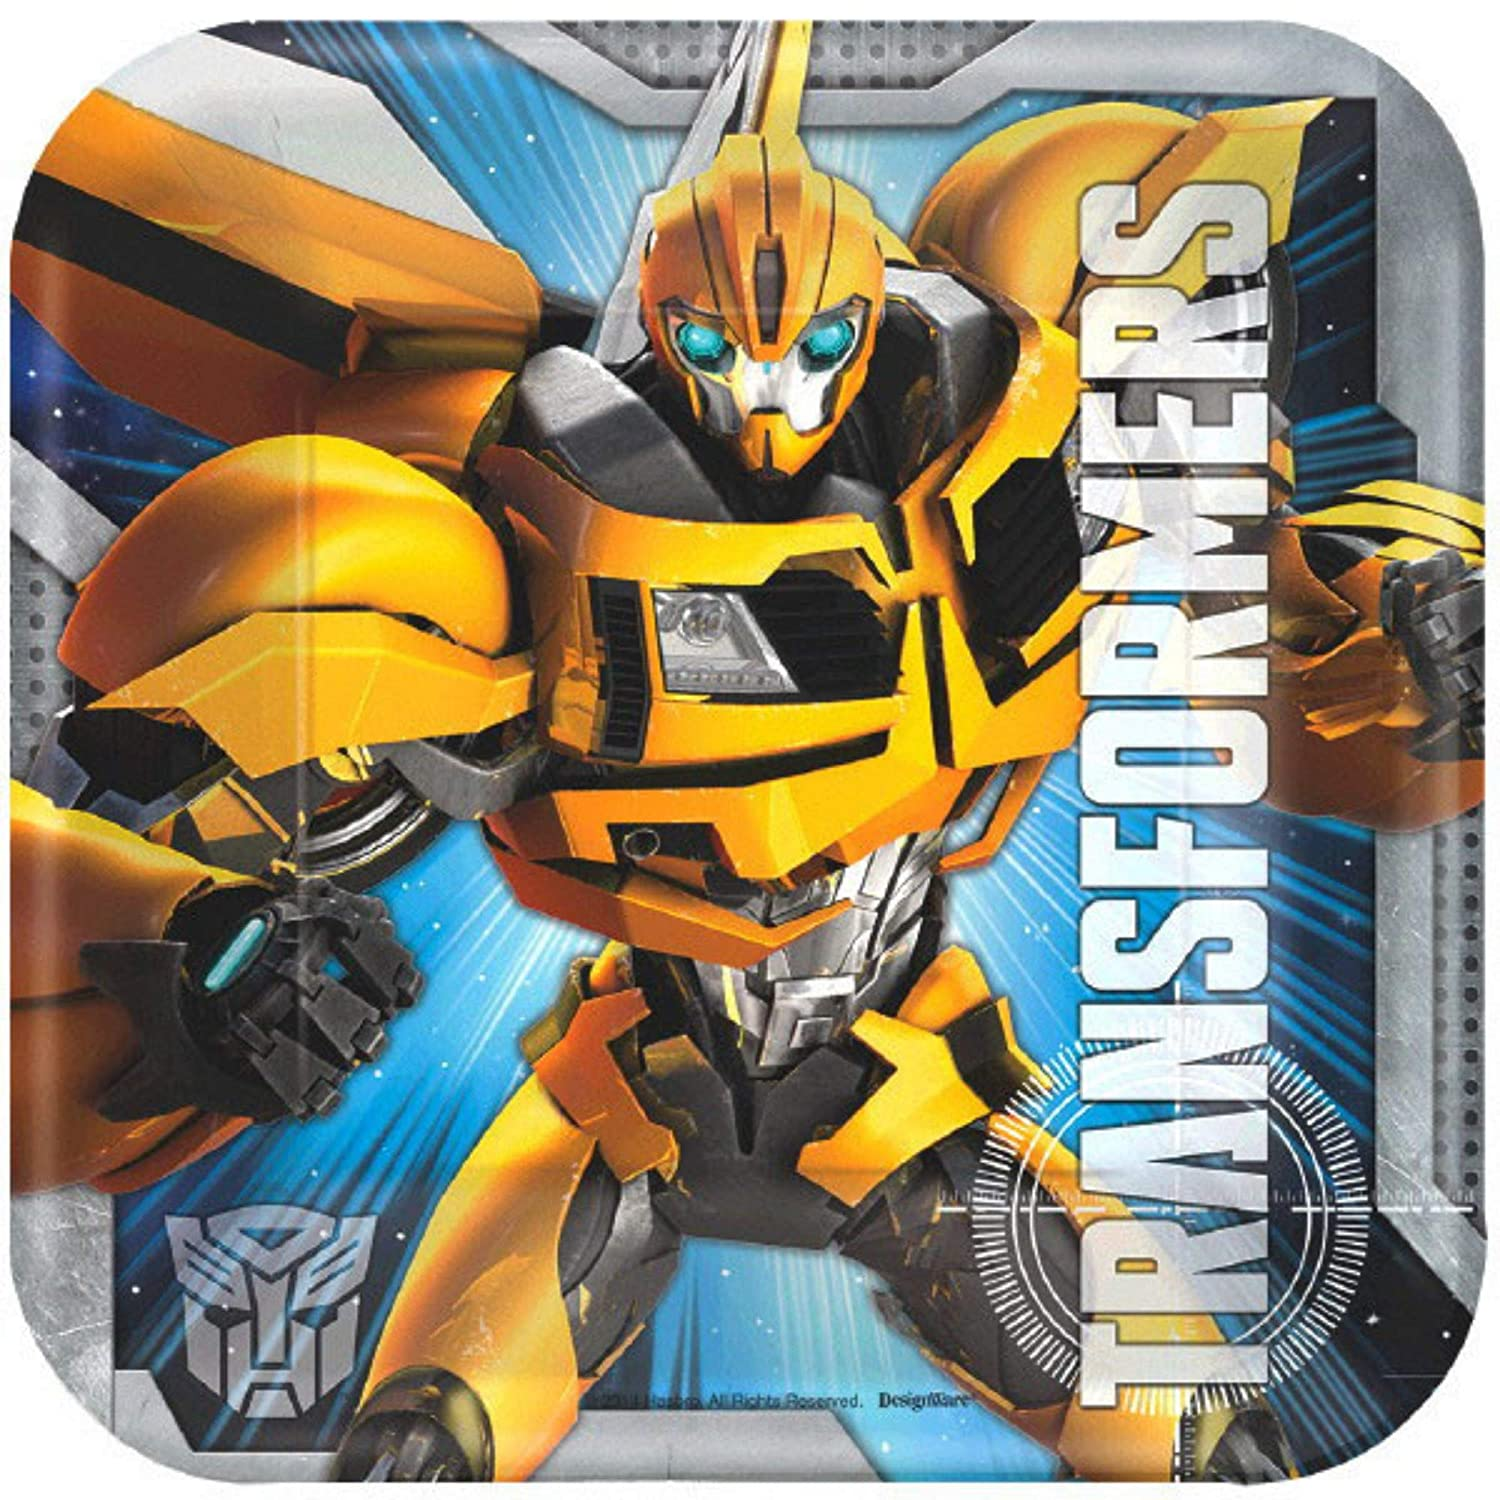 Transformers Birthday Party Supplies Bundle Pack for 16 Guests Basic ParteePak